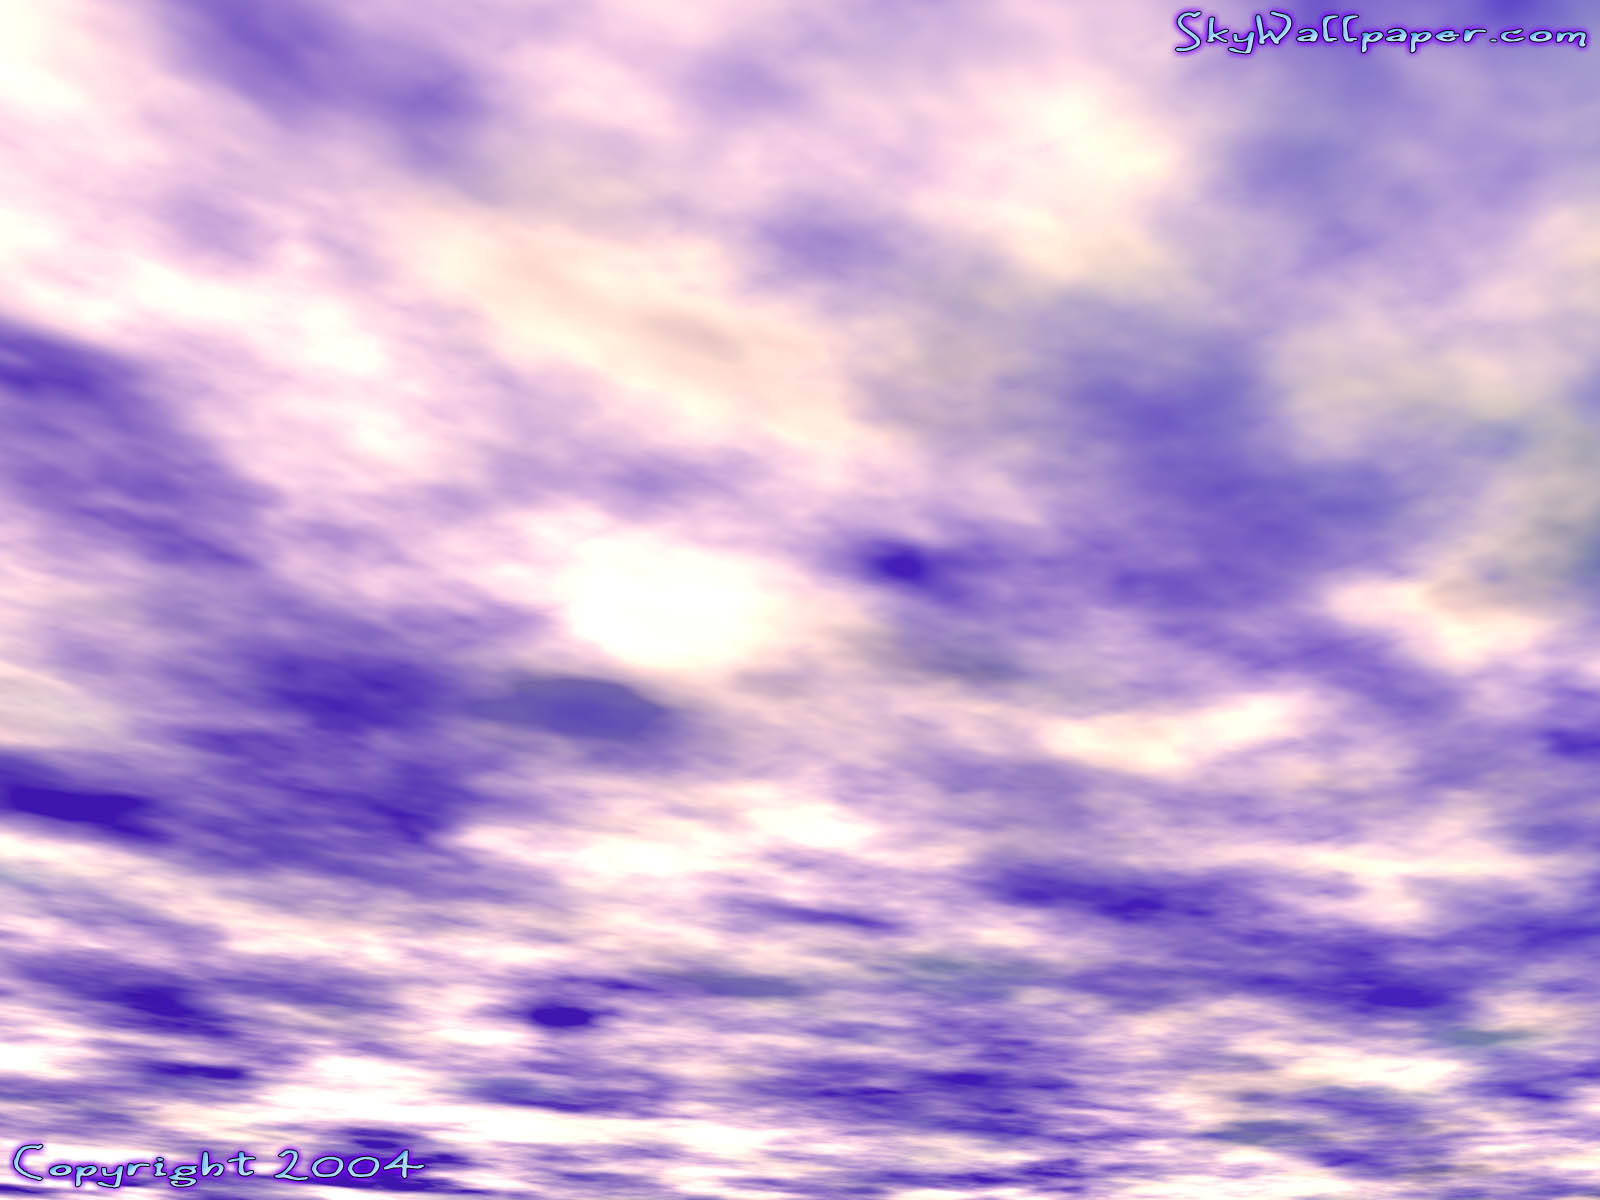 """Digital Sky Wallpaper Image"" - Wallpaper No. 81 of 109. Right click for saving options."